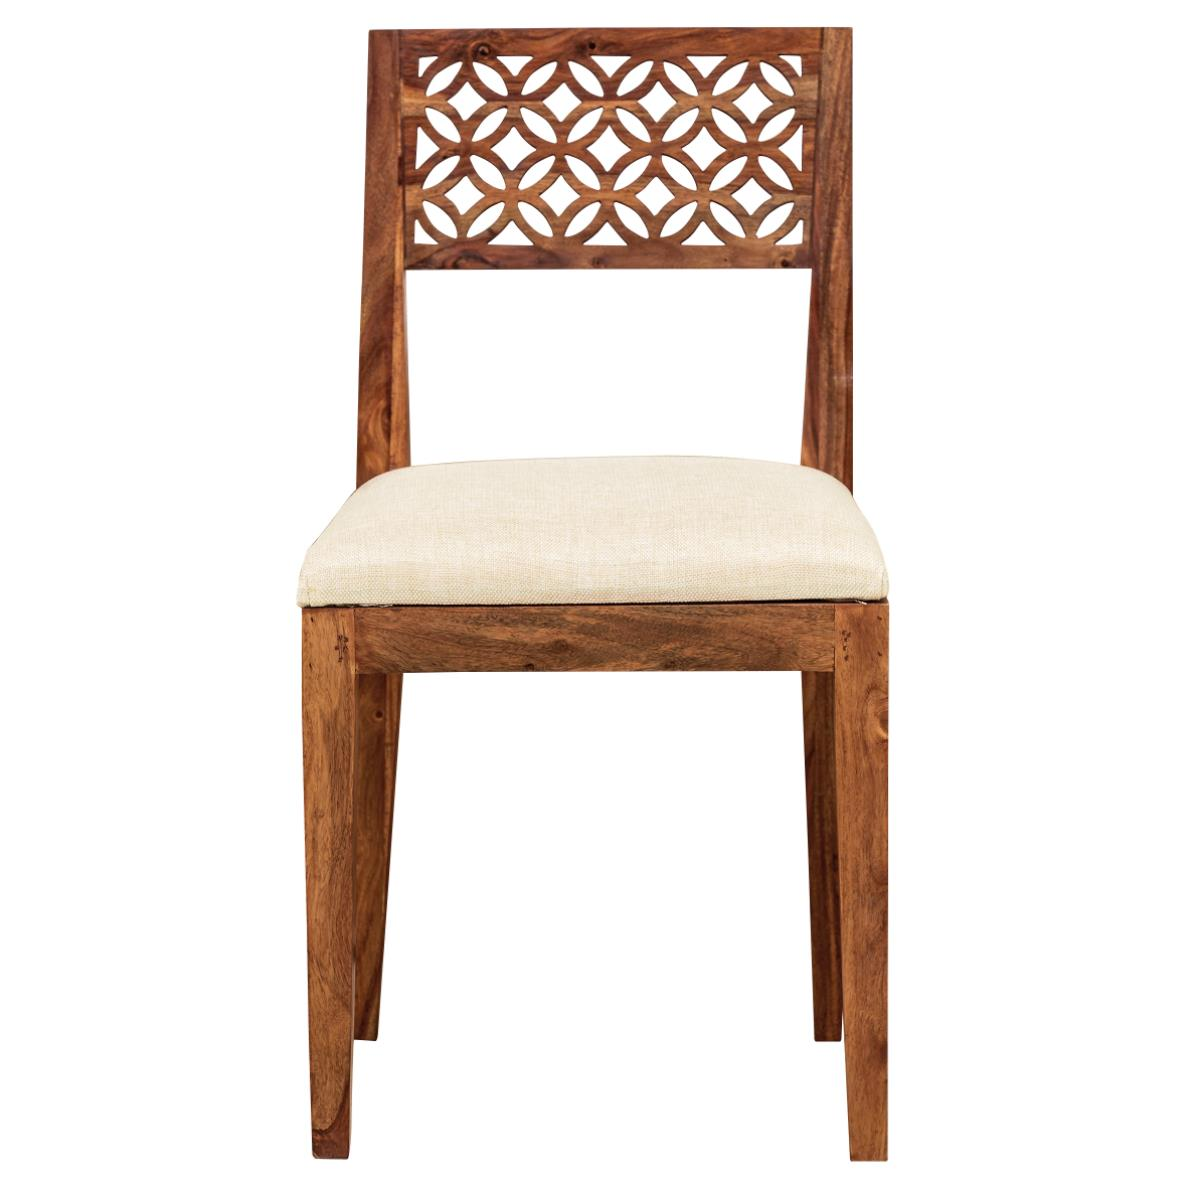 JALI CHAIR